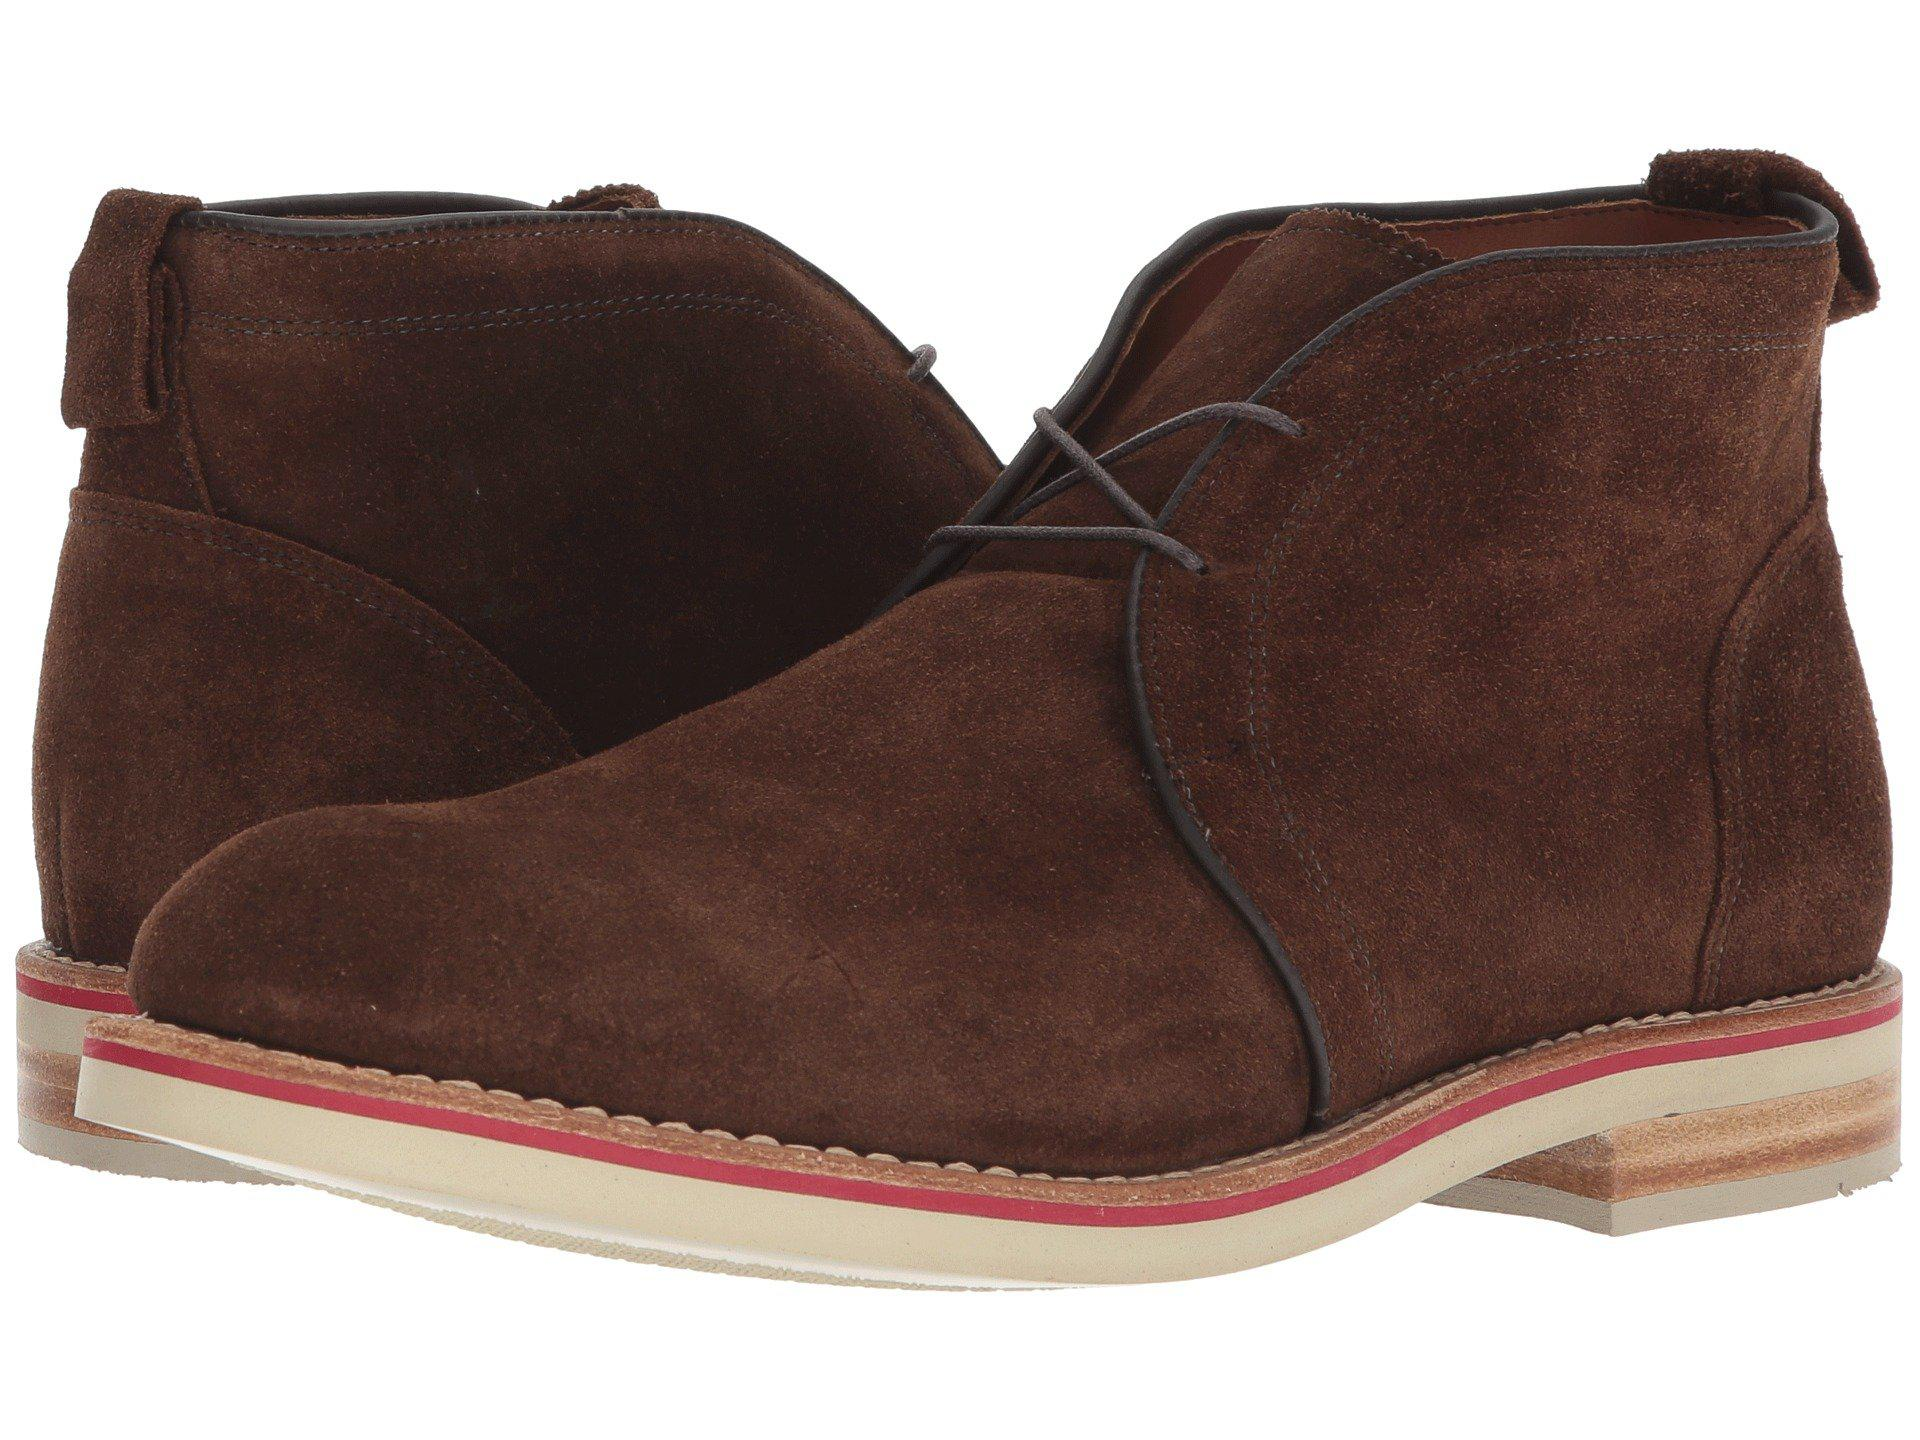 80ad3a6ddca Men's Brown Nomad Chukka (snuff Suede) Dress Lace-up Boots